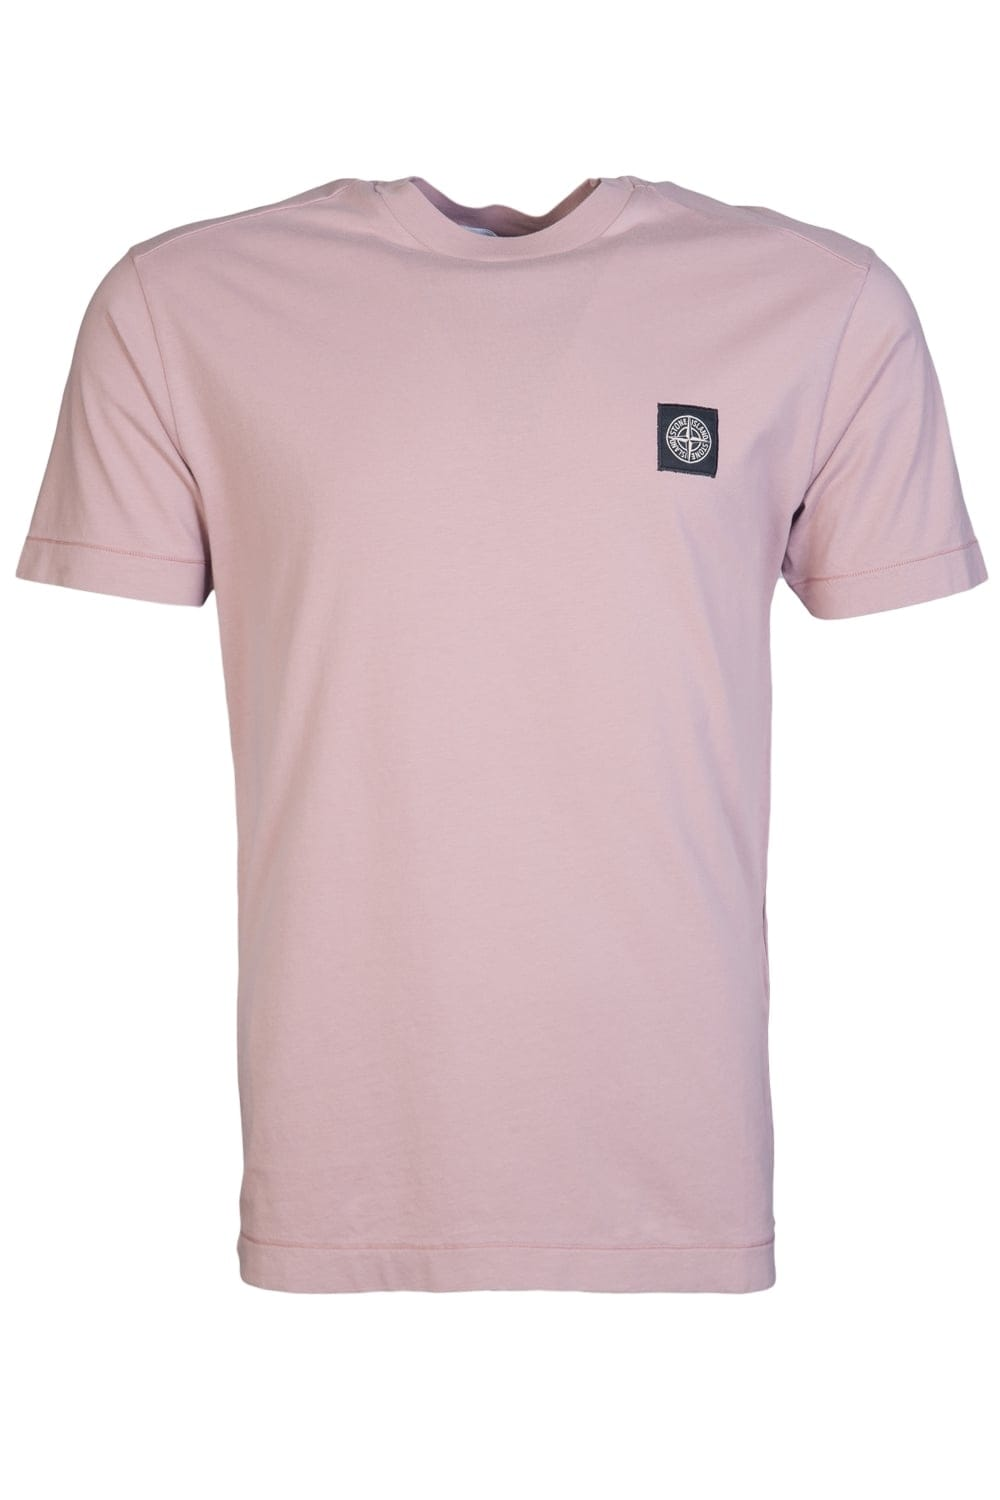 stone island t shirt 651524141 clothing from sage